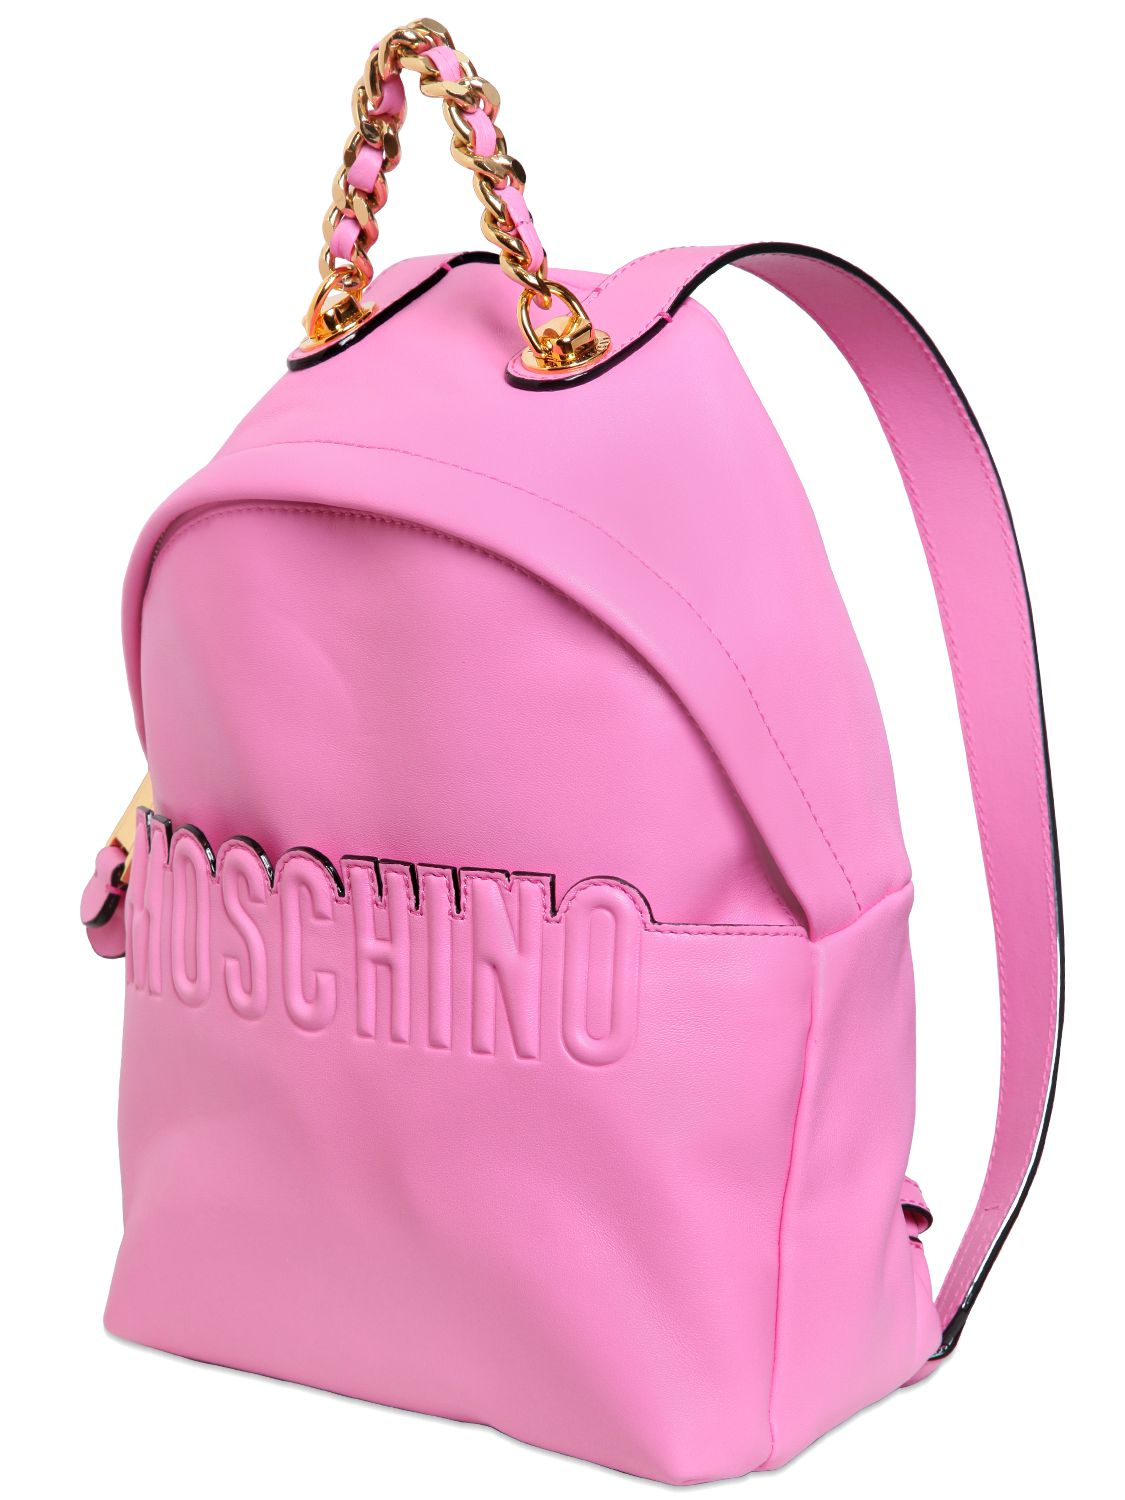 Moschino Leather Backpack With Logo Detail in Pink | Lyst